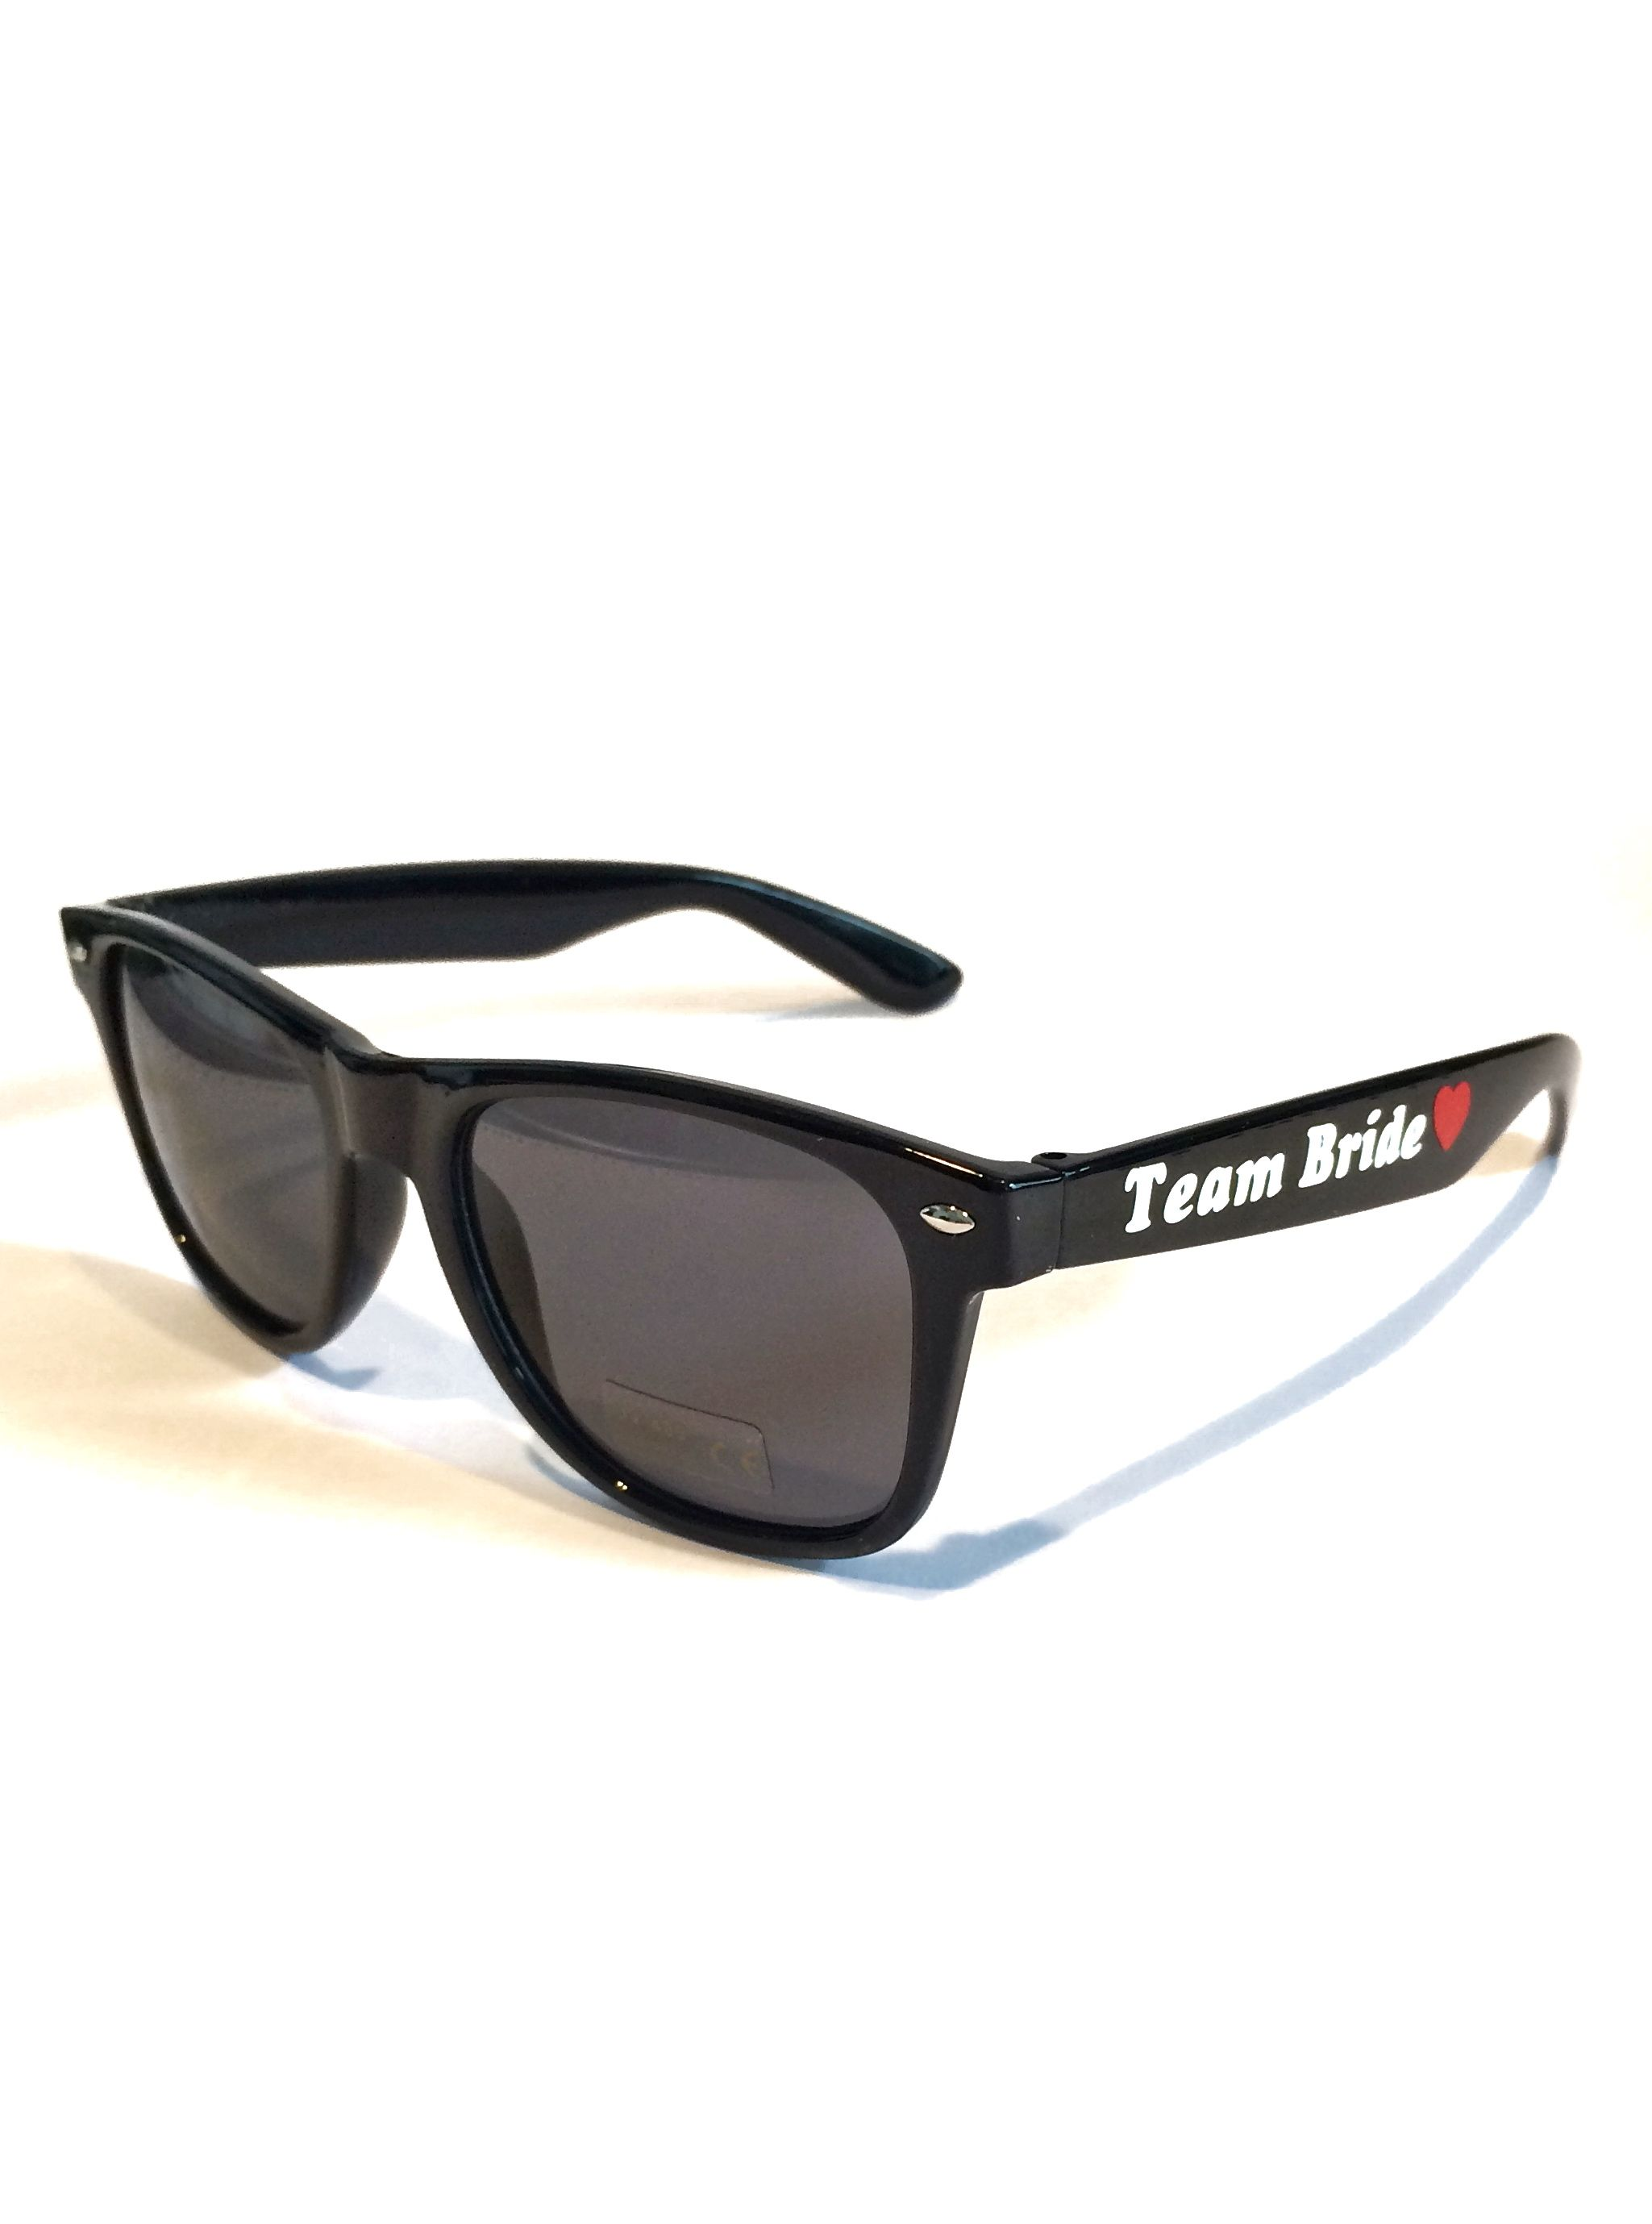 Cheap wedding sunglasses black with customized text ideal for beach ...